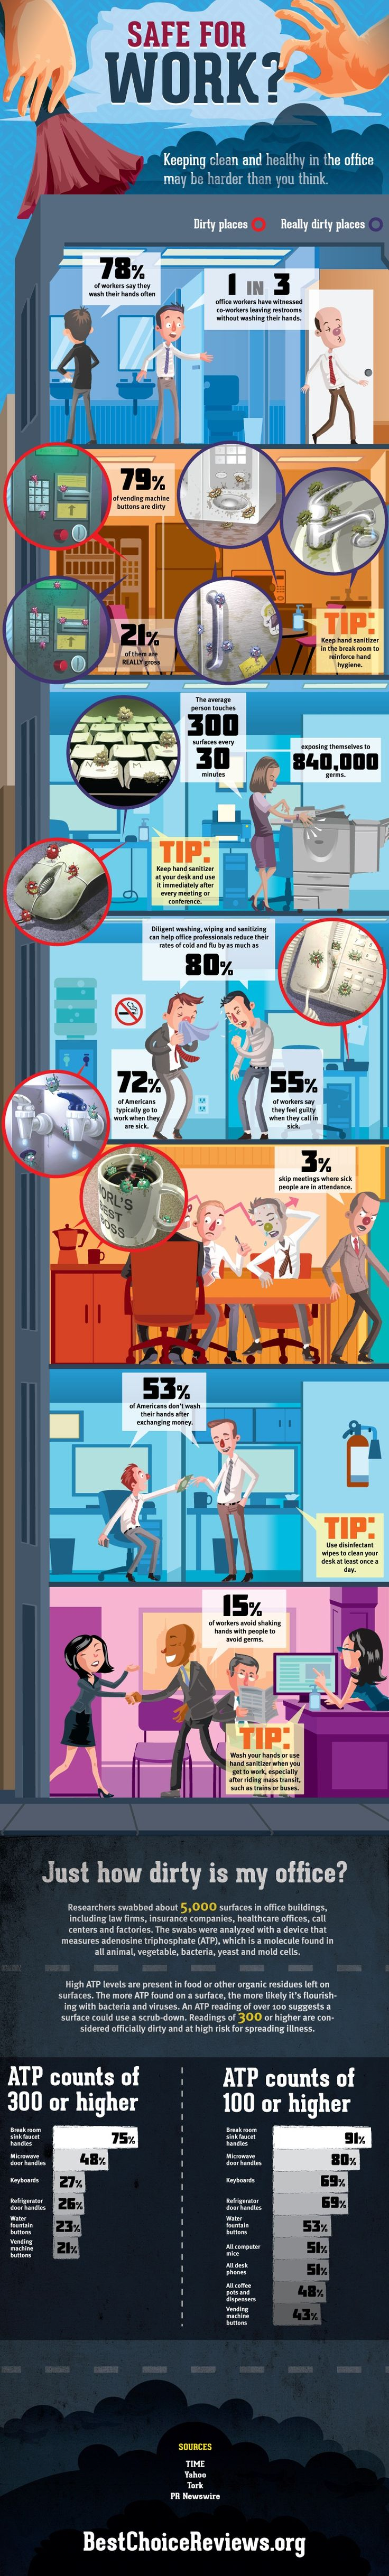 Is Your Office Safe for Work?  Keeping clean and healthy in the office may be harder than you think!    Did you know that 1 in 3 office workers have witnessed co-workers leaving restrooms without washing their hands? Or how about 53% of Americans don't wash their hands after exchanging money? Or even the average person touches 300 surfaces every 30 minutes, exposing themselves to 840,000 germs?  YUCK!!    #Hygiene  #OfficeSafety